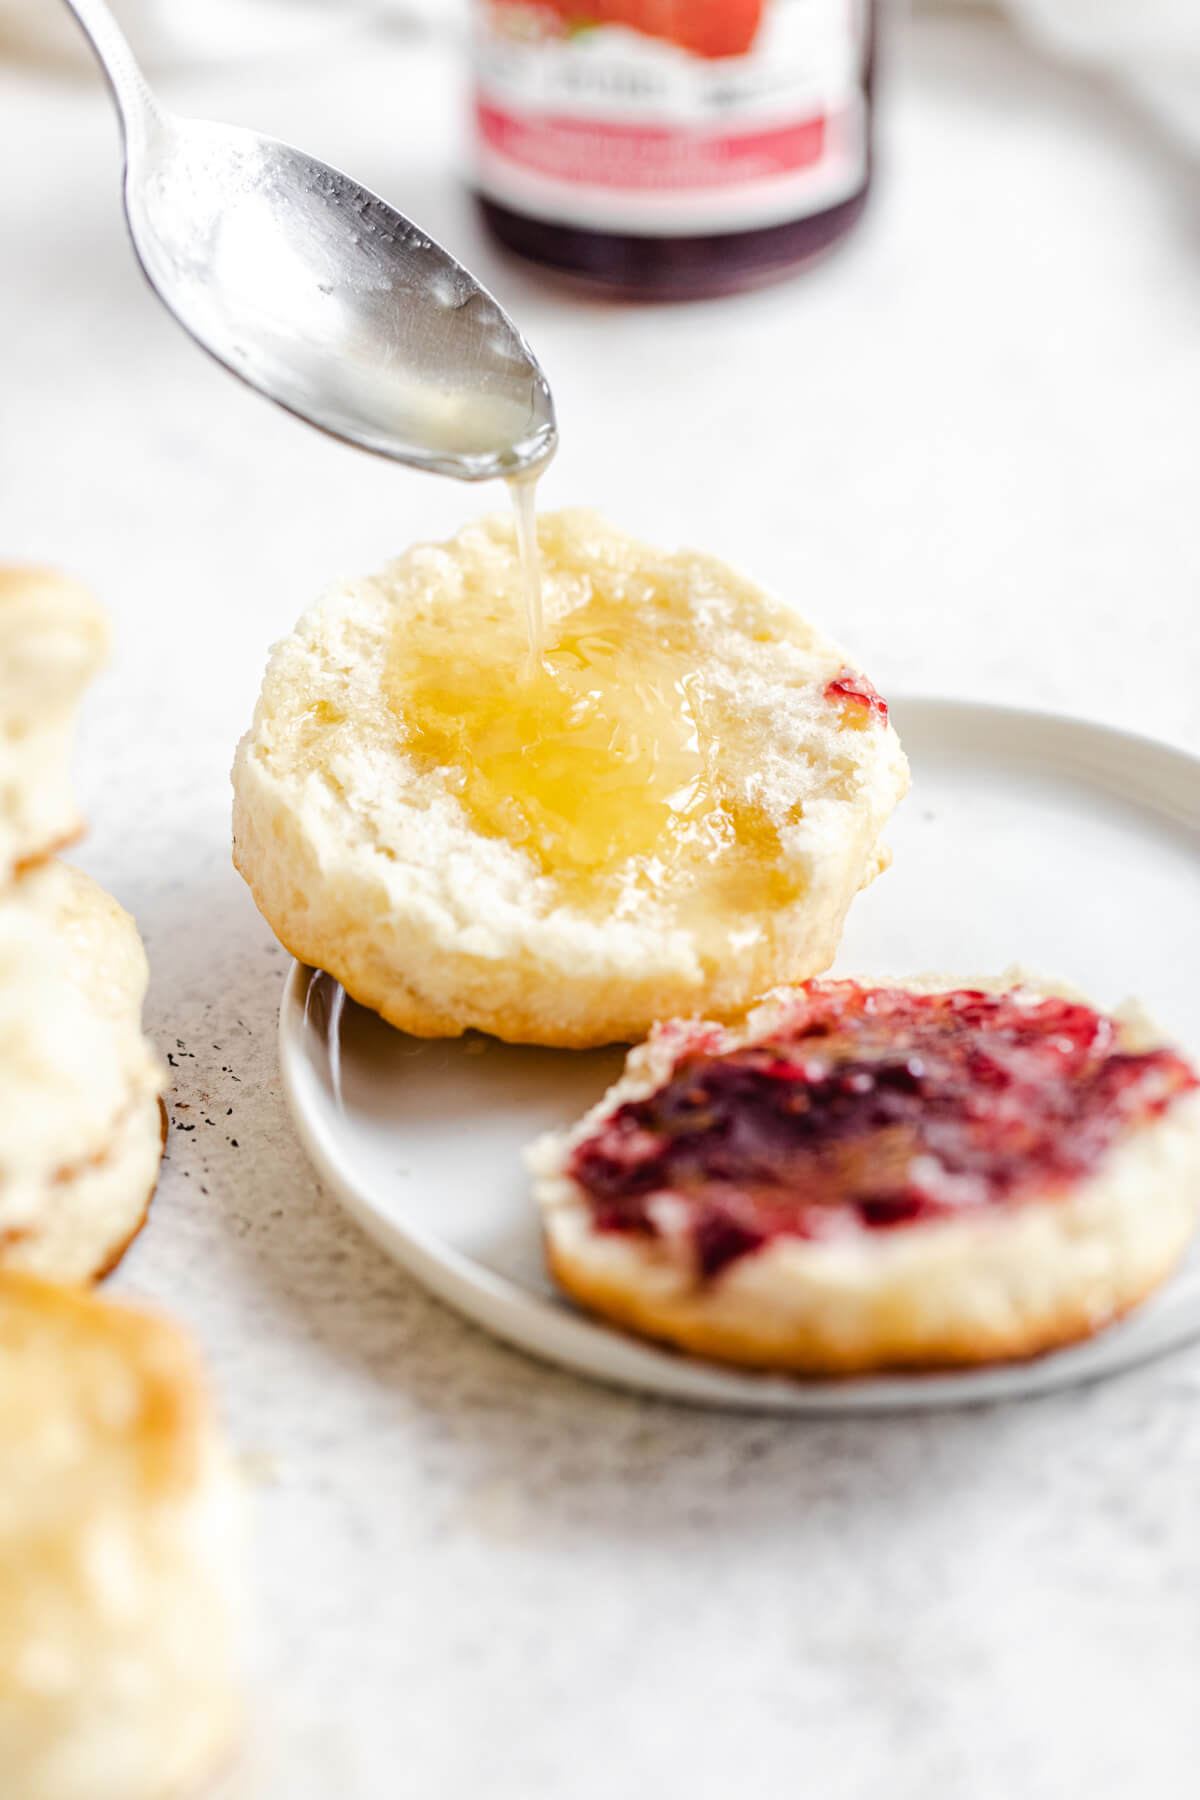 pouring honey butter on one side of a biscuit with jam on the other half